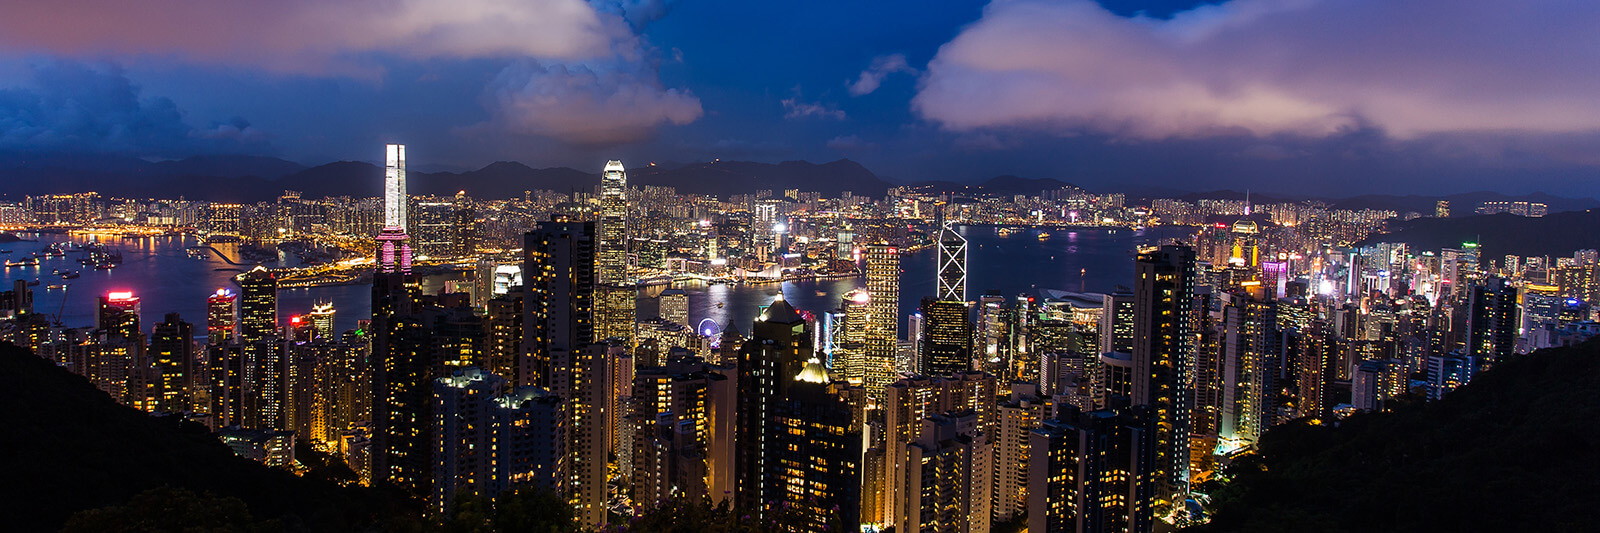 Breathtaking view of Hong Kong at night from The Peak